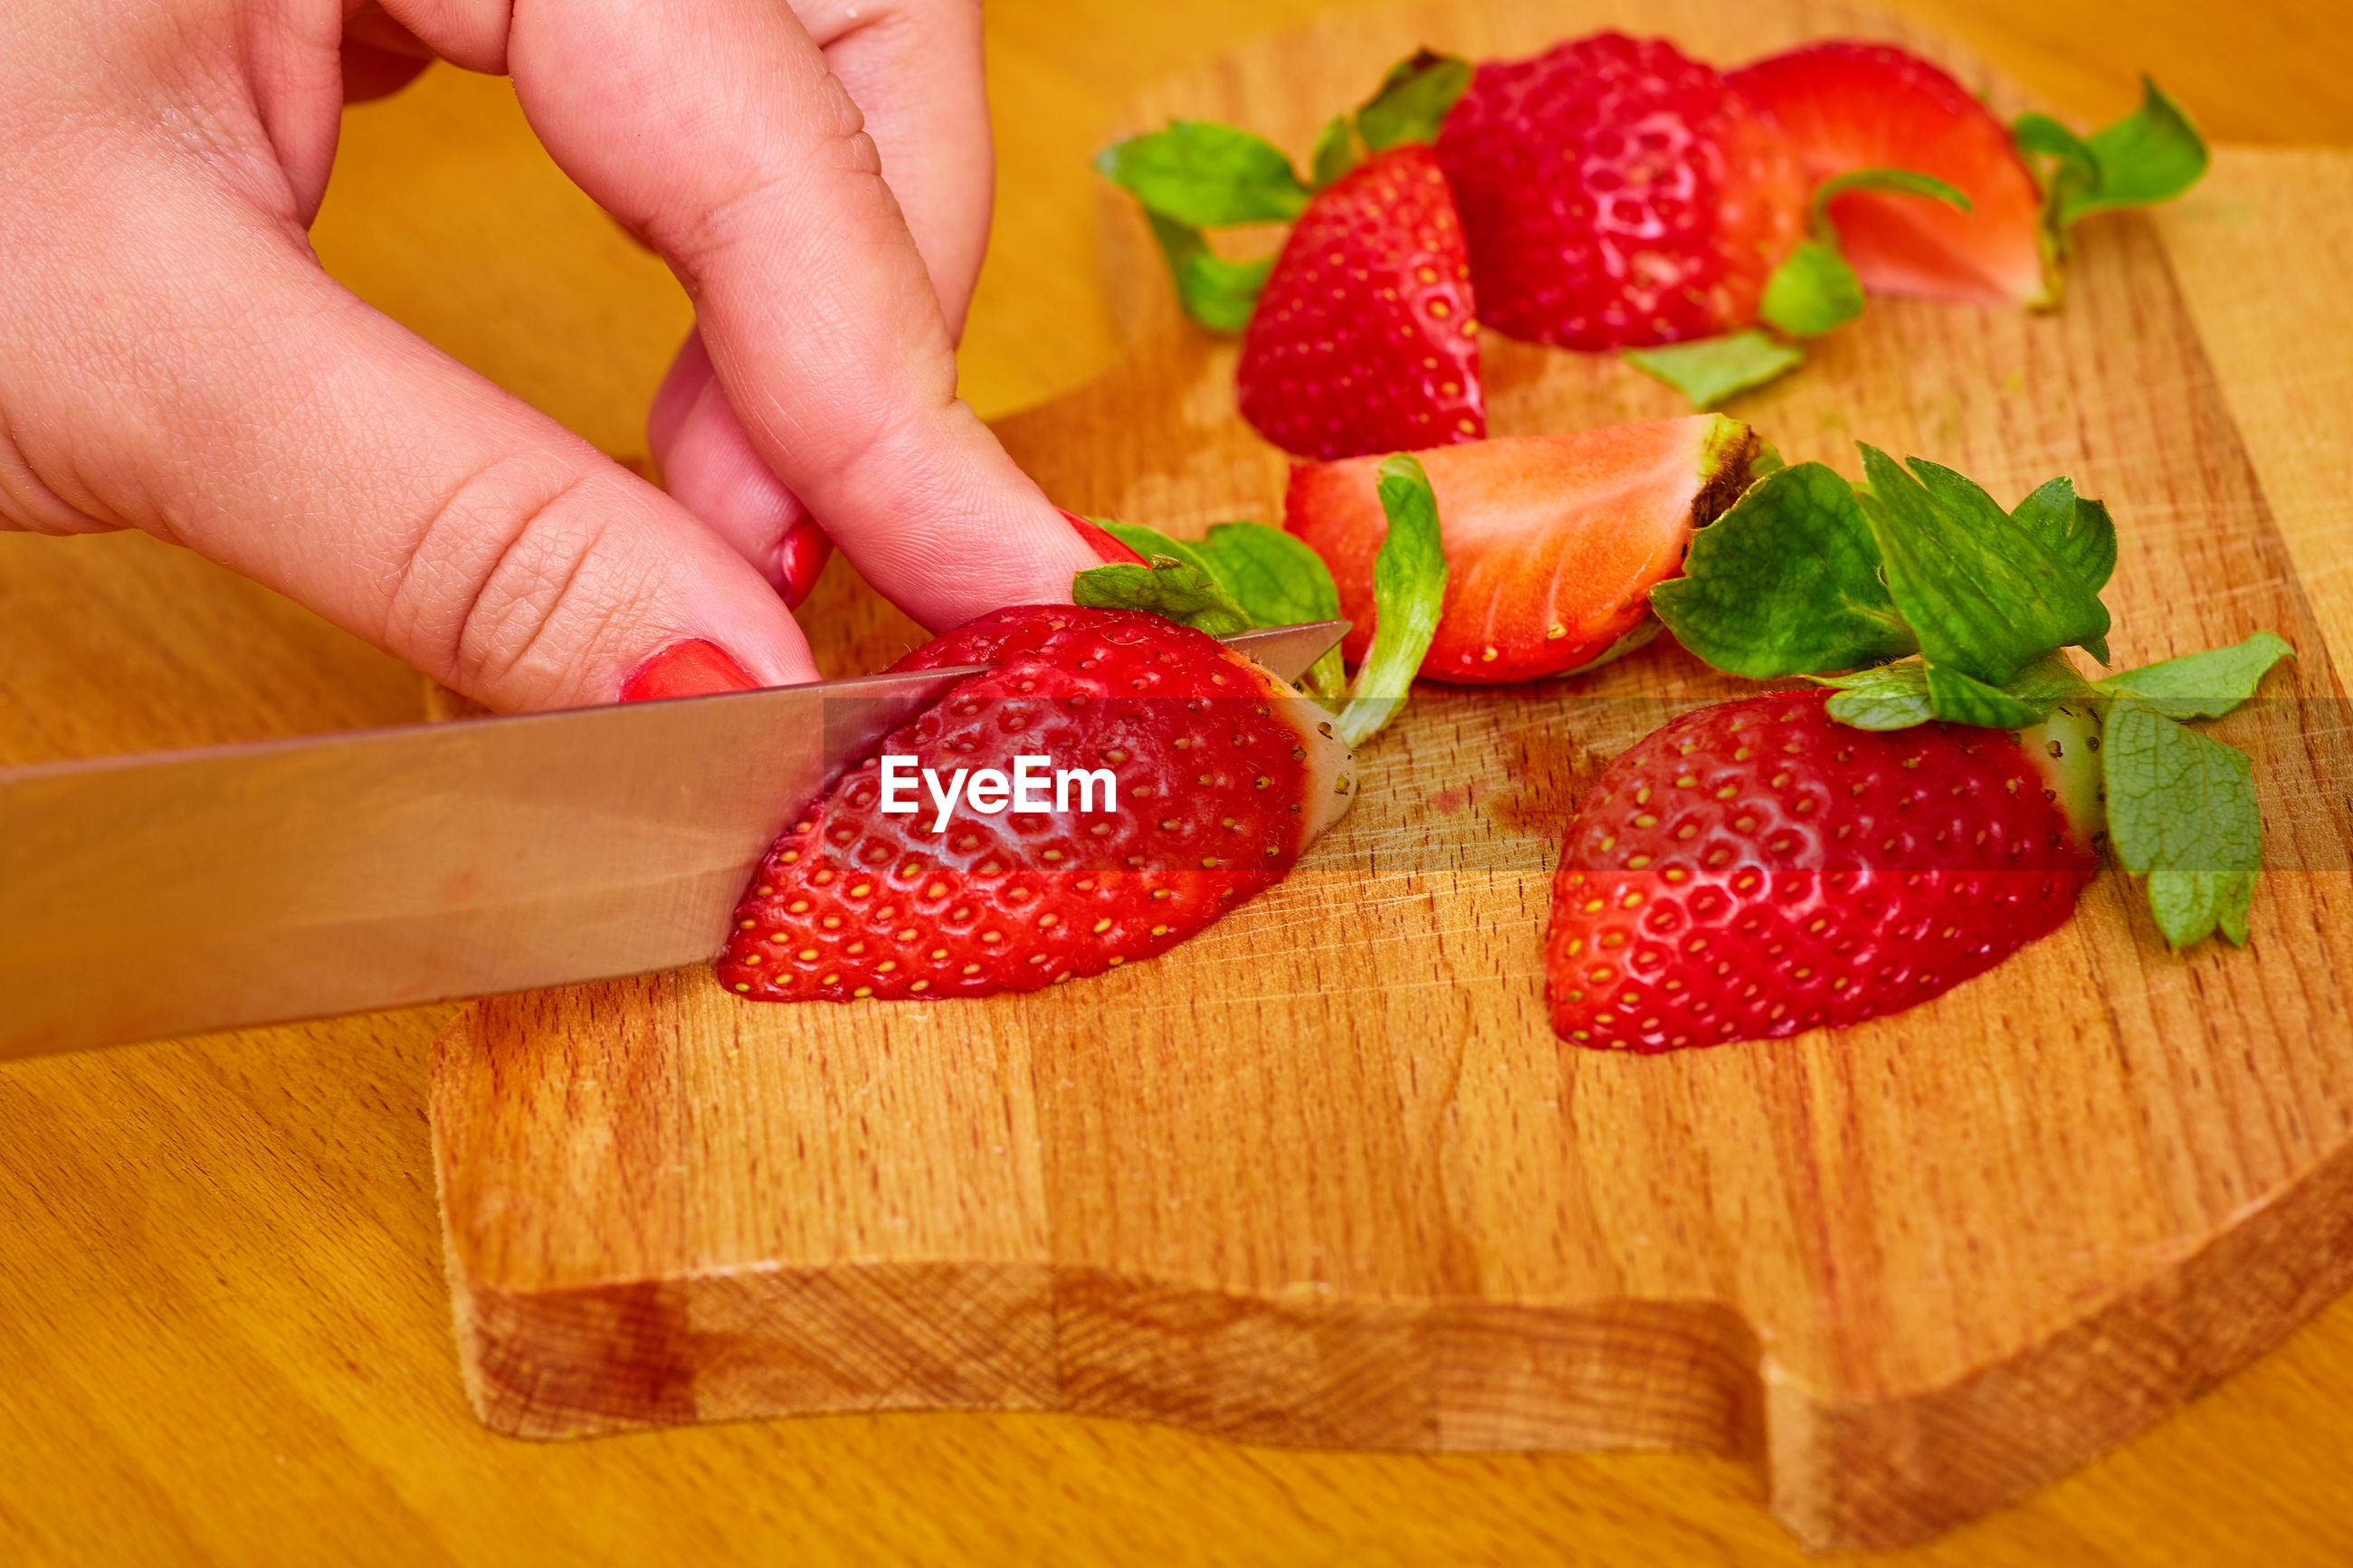 CROPPED IMAGE OF HAND HOLDING STRAWBERRIES IN PLATE